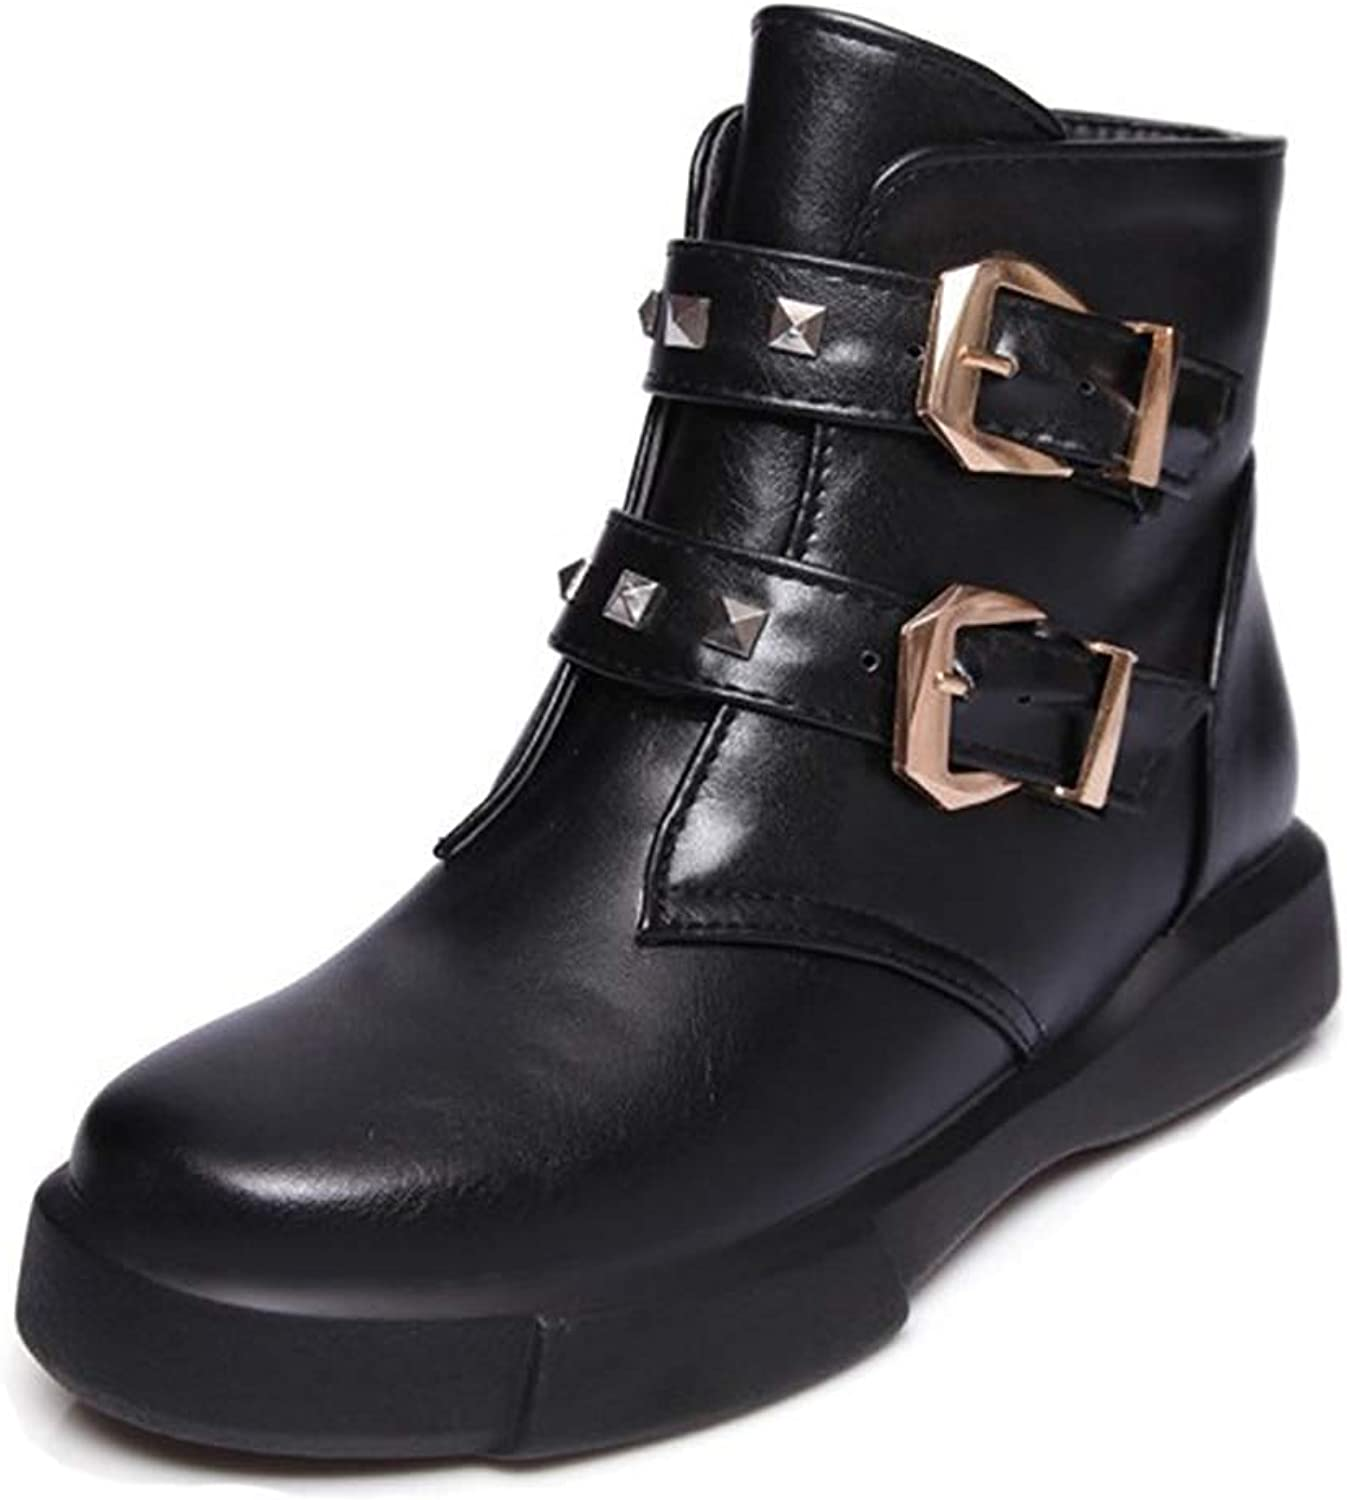 Unm Women's Studded Buckle Strap Round Toe Thick Sole Motorcycle Boots Pull On Flat Platform Ankle Booties